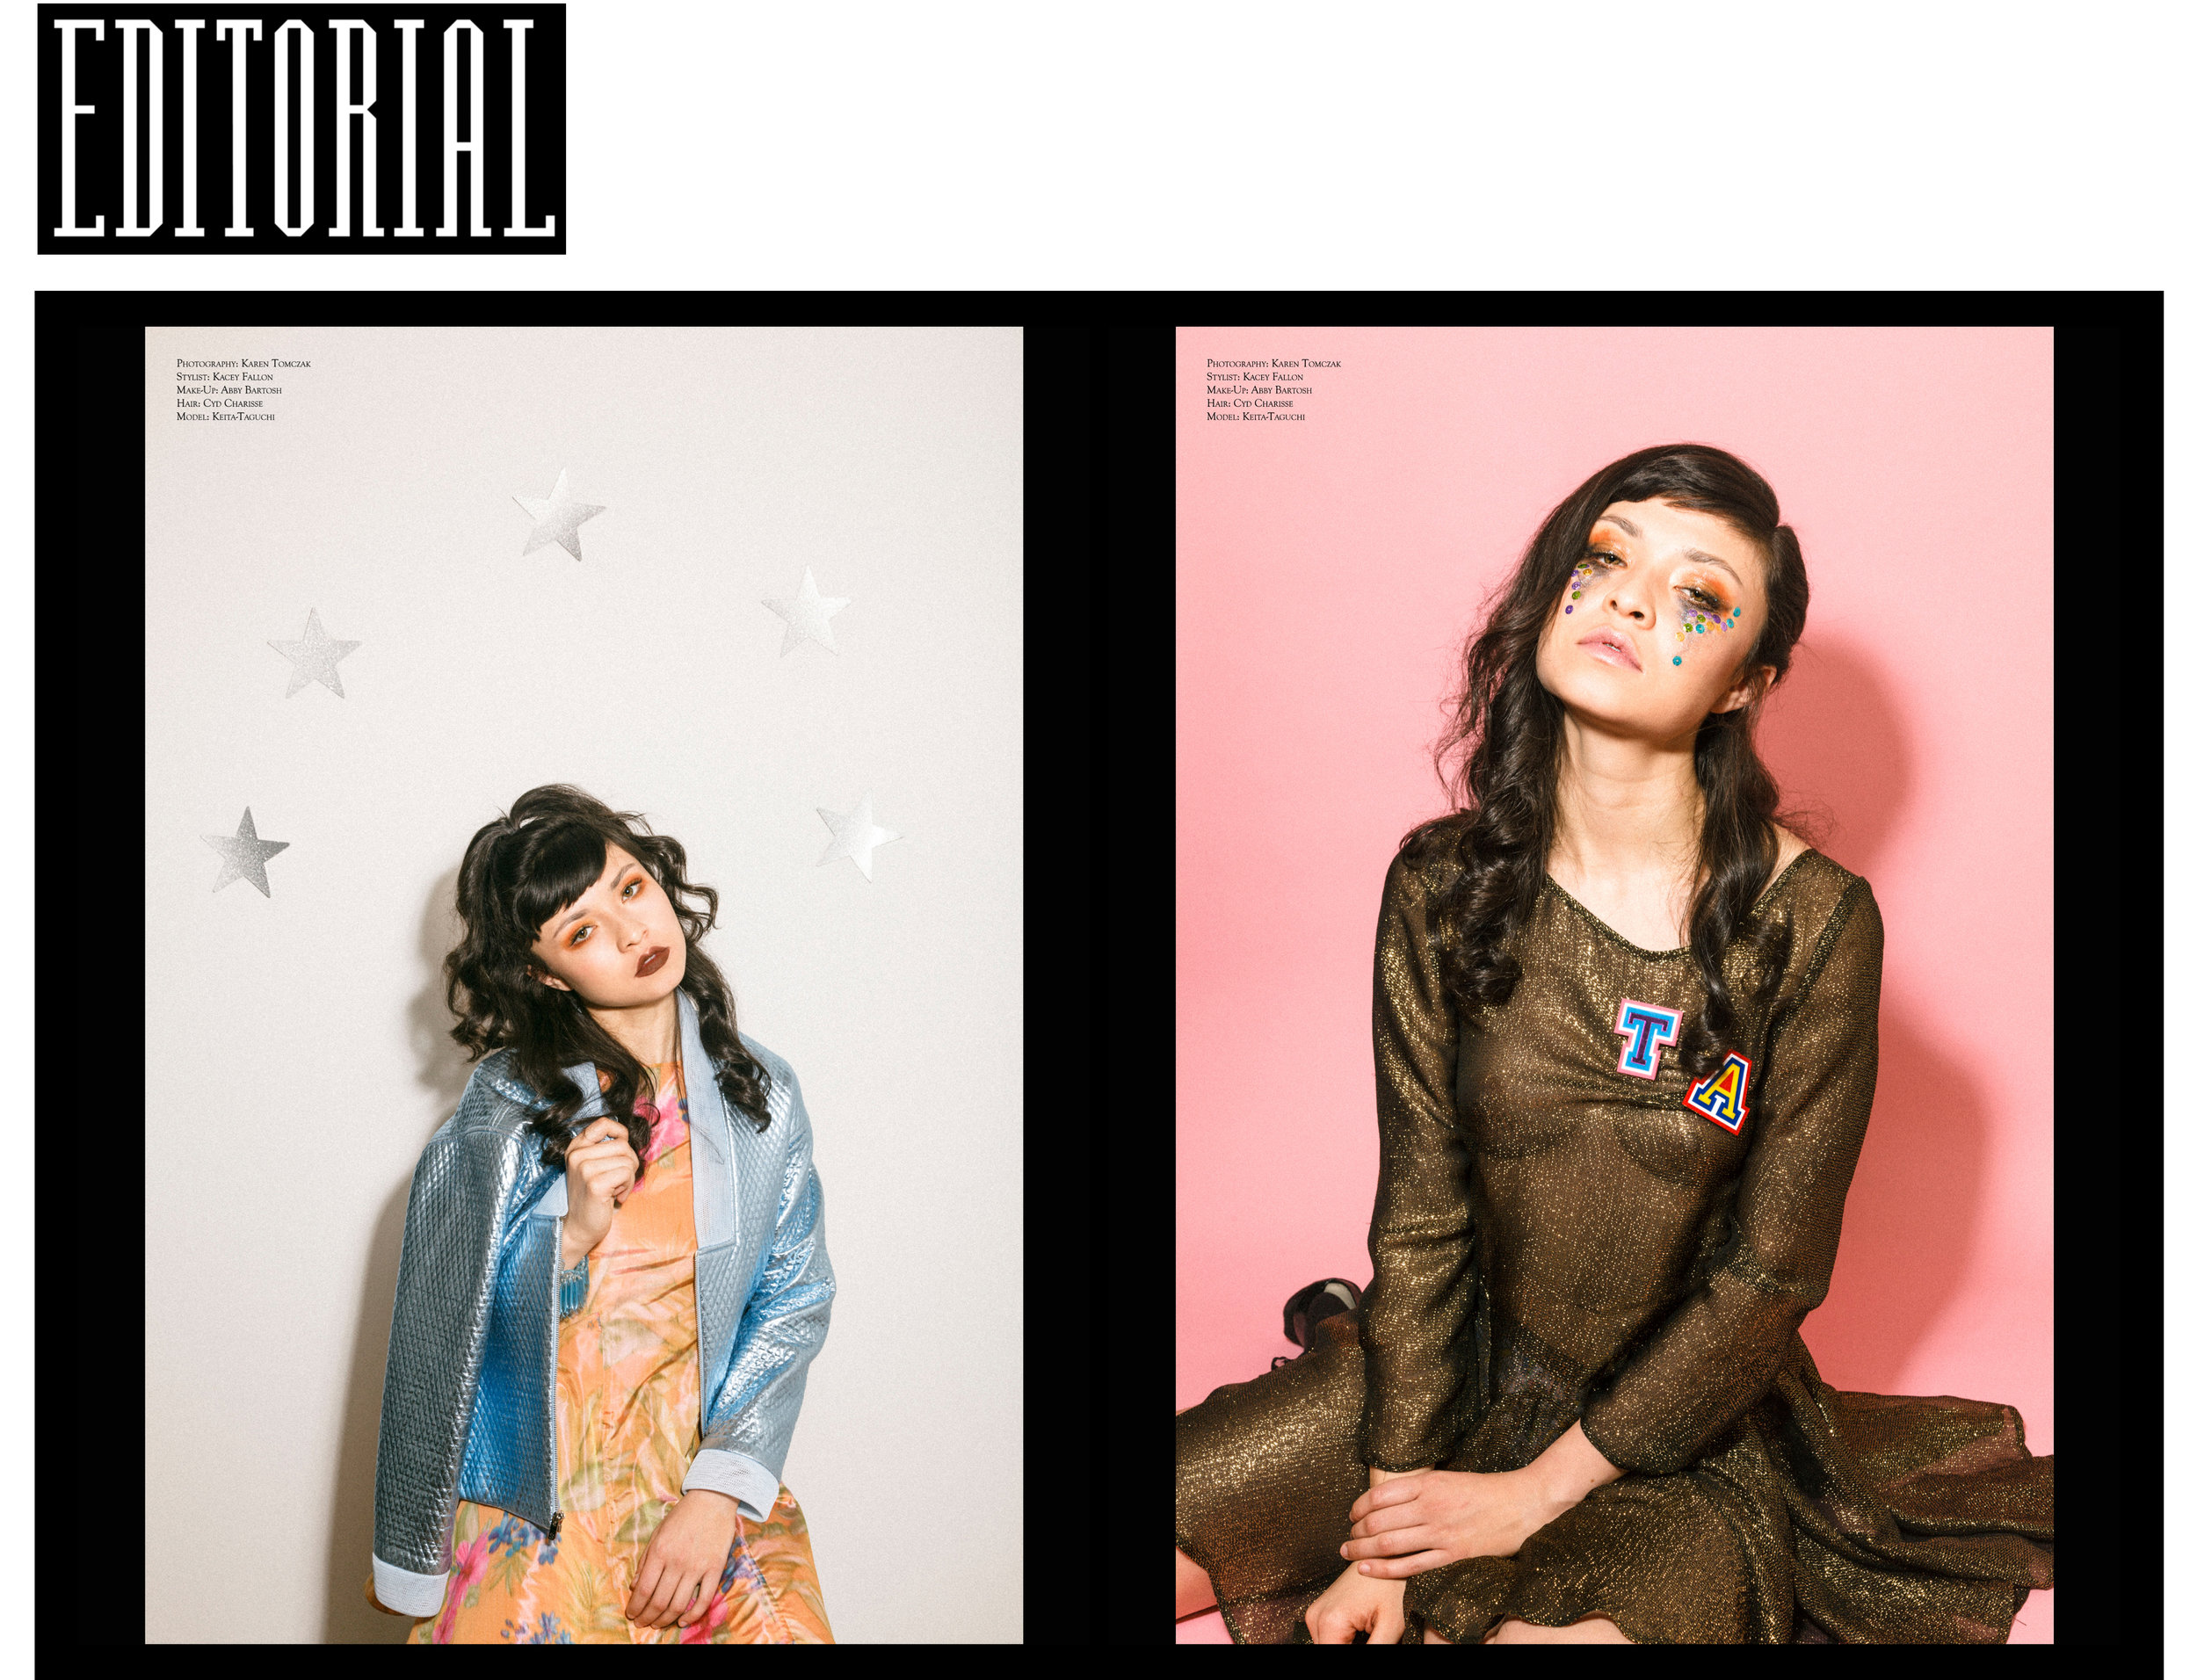 Editorial Magazine smells like teen spirit team warp woven floral lamé skater dress metallic baby blue jacket leather faux black gold lurex embroidered chiffon godet ruffle swing tie dress patches letterman cheerleader style homecoming queen seventeen cosmo girl model emerging designer ones to watch rising talent made-to-measure bespoke luxury custom sustainable ethical made in New York City local NYC Brooklyn Bushwick handcrafted beauty stickers